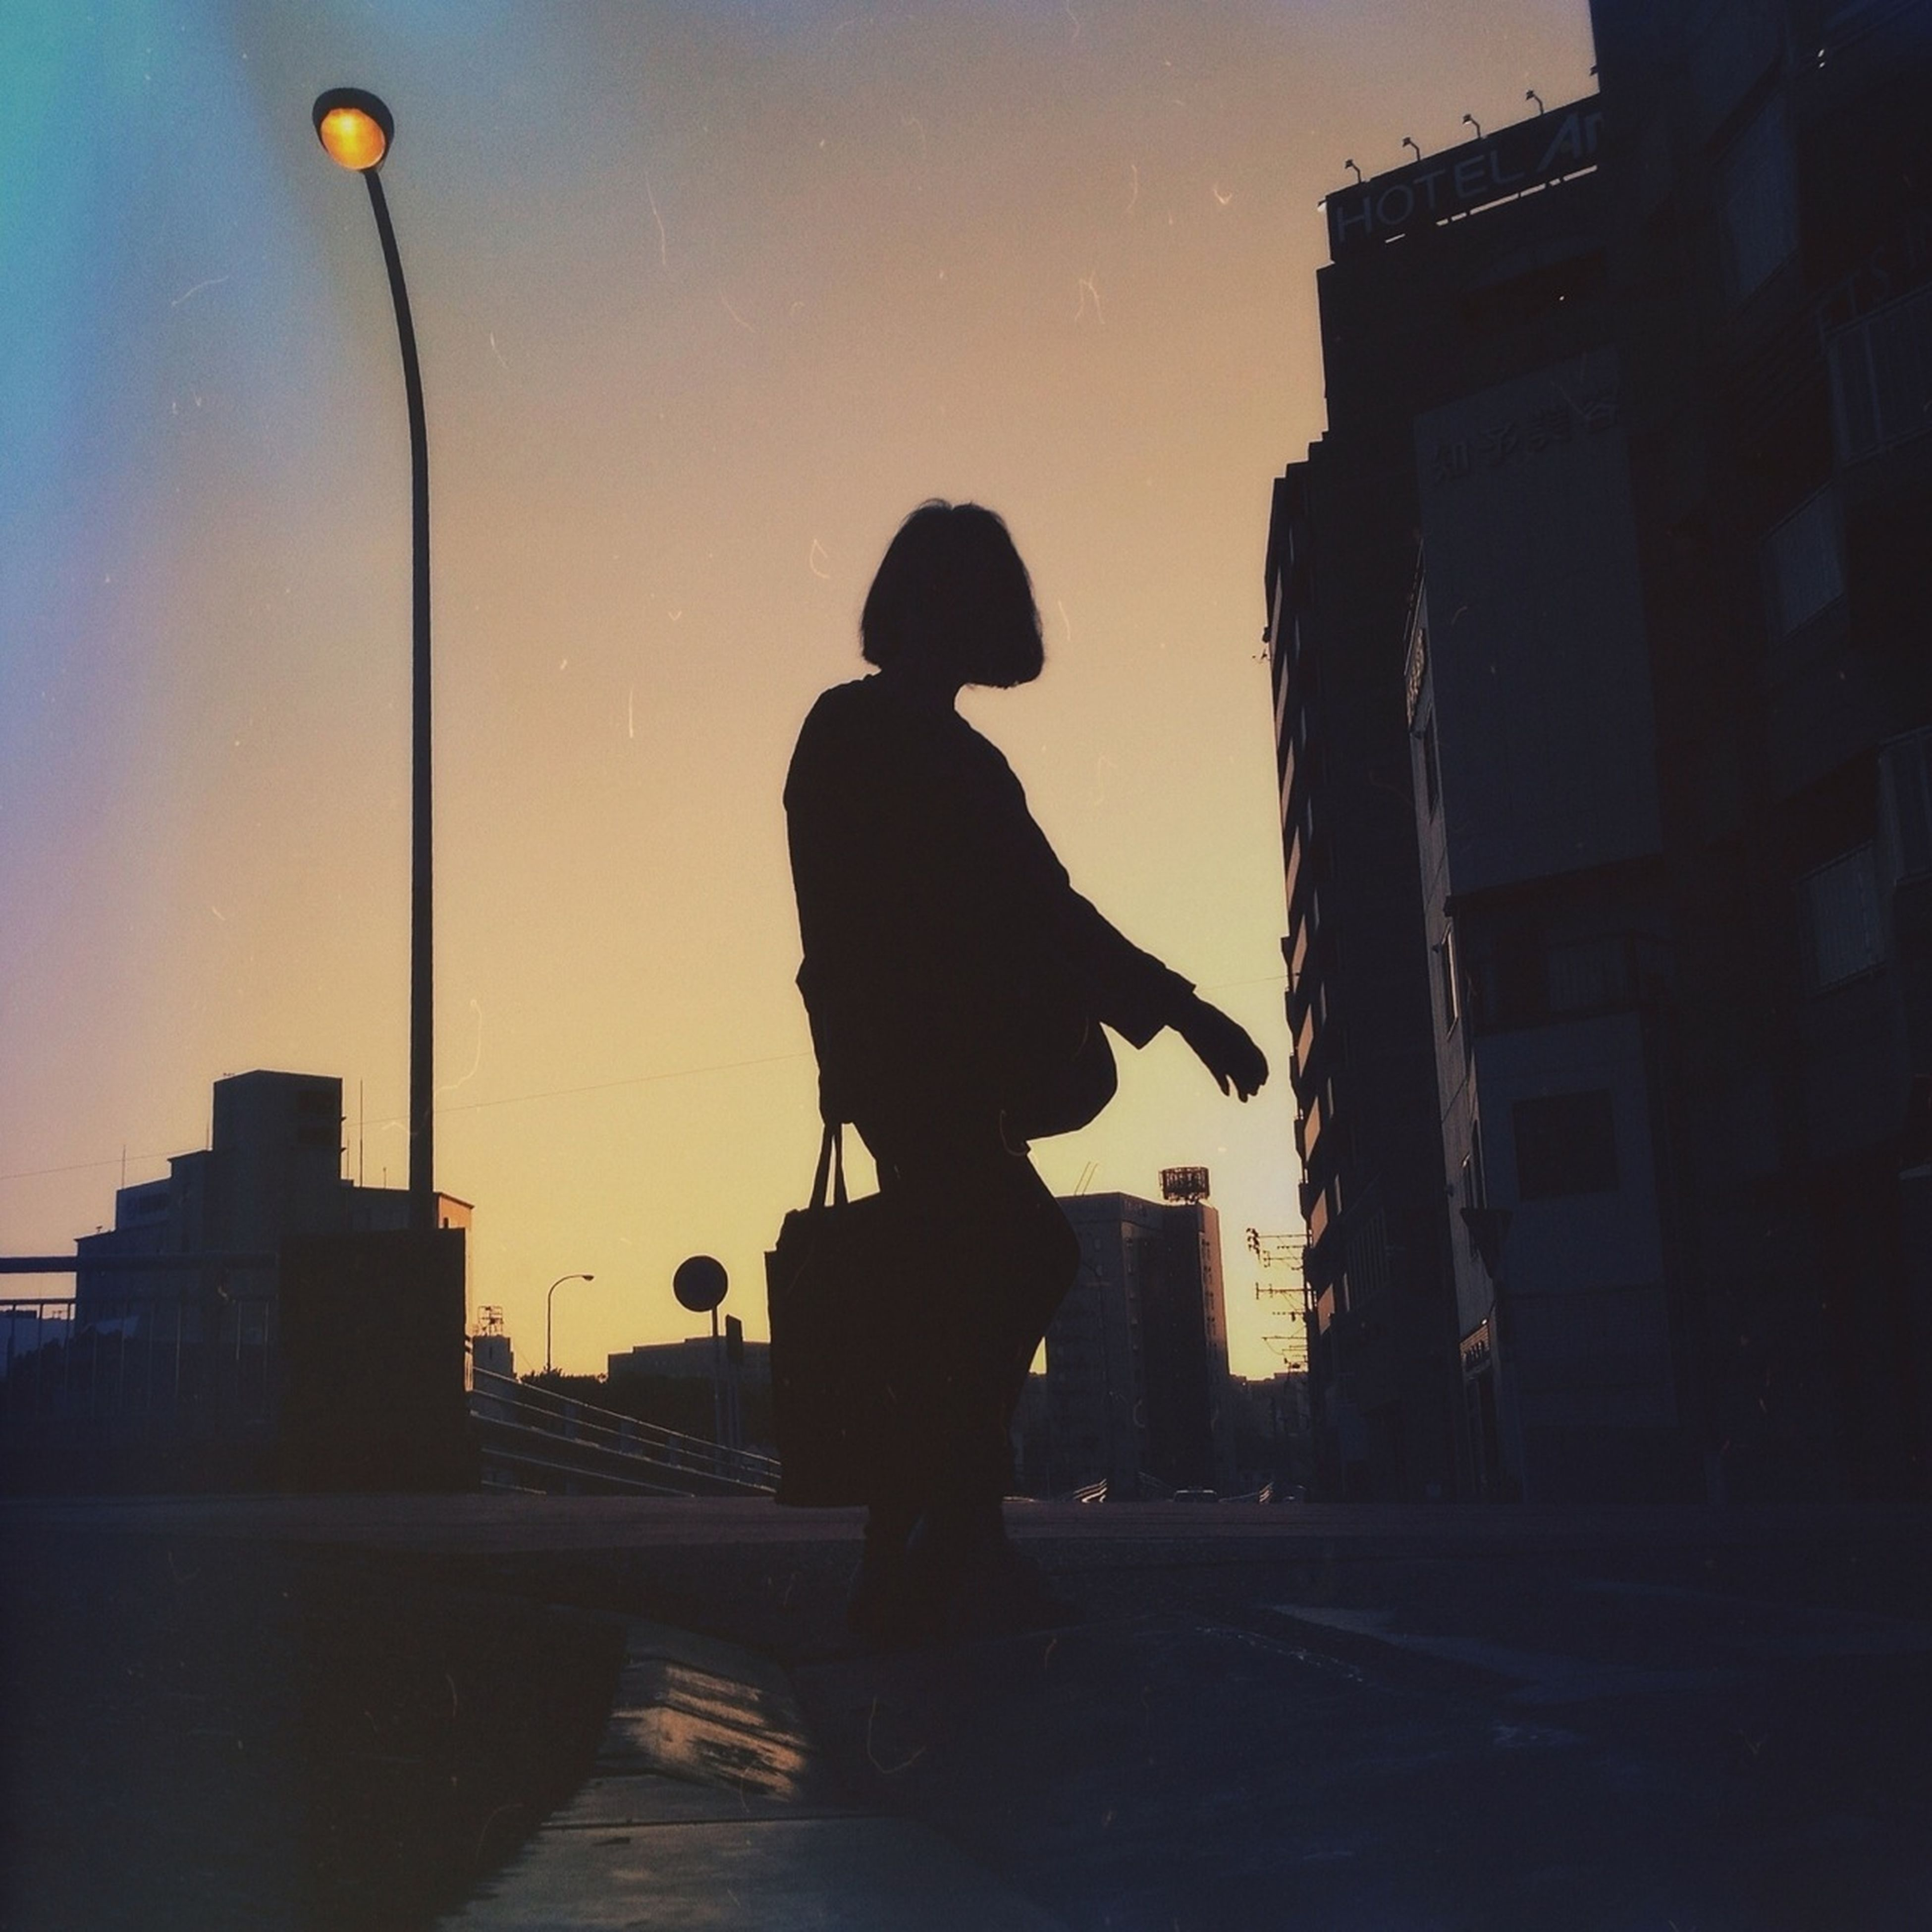 full length, silhouette, lifestyles, men, built structure, building exterior, leisure activity, rear view, architecture, walking, sky, street, standing, sunset, street light, low angle view, city